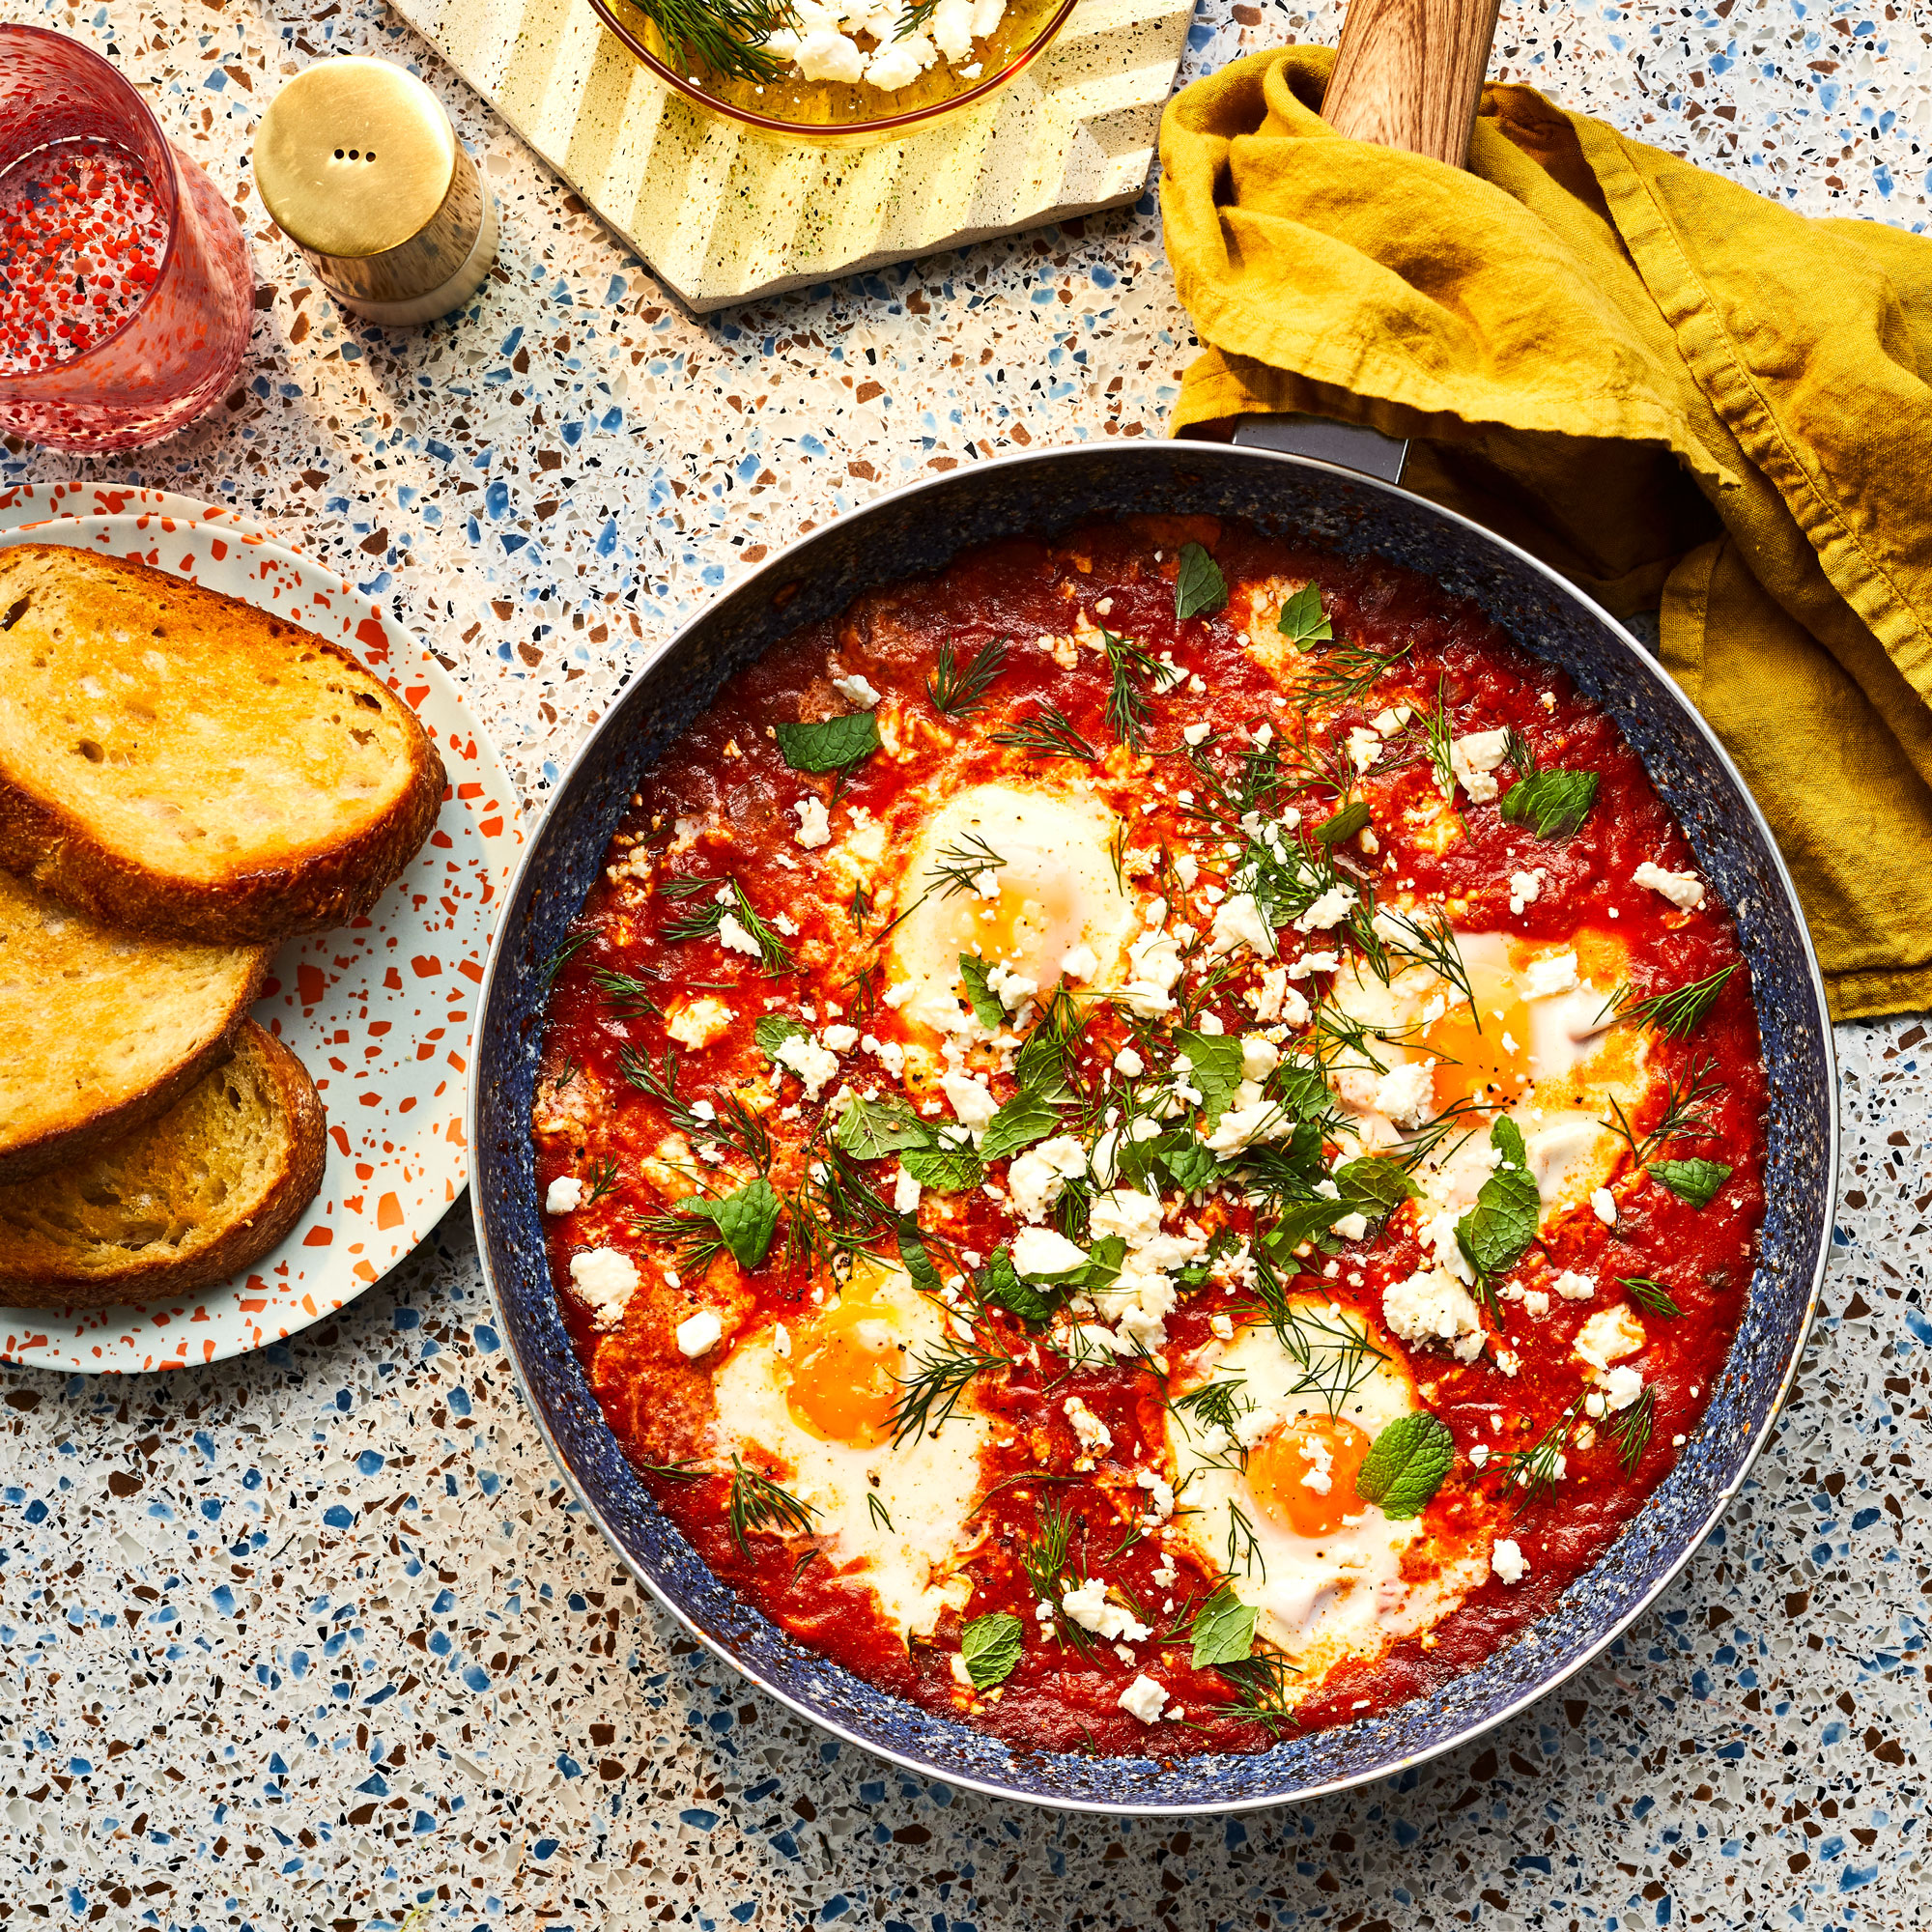 Saucy Simmered Eggs